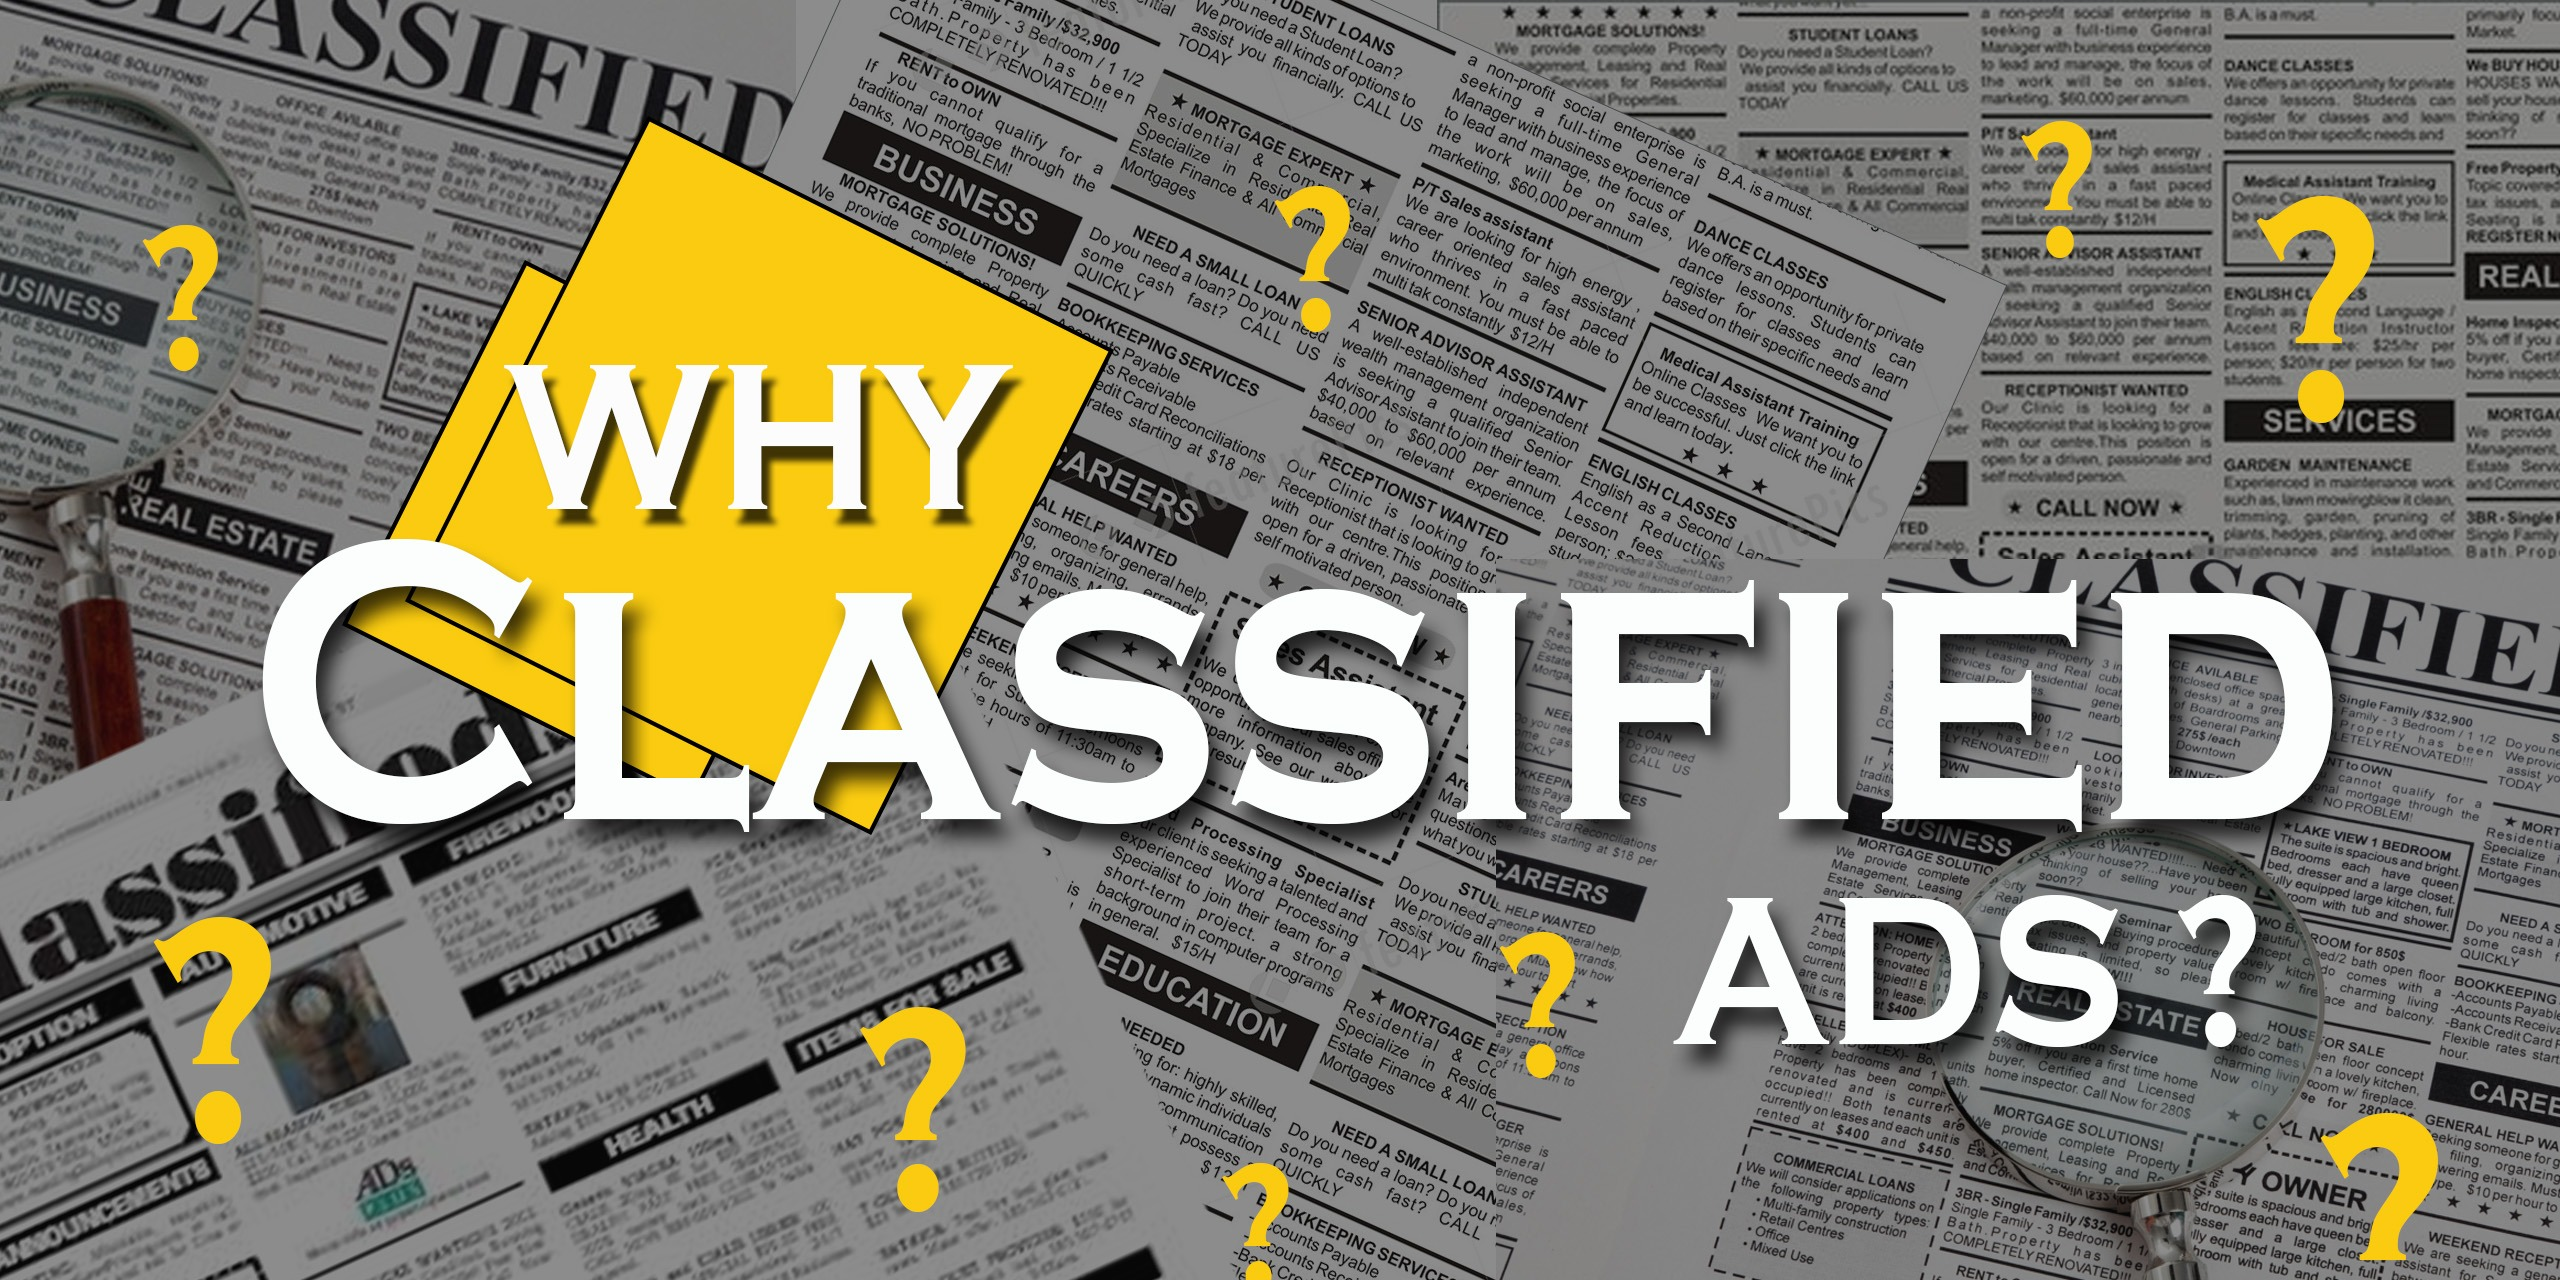 Why Classified Ads?